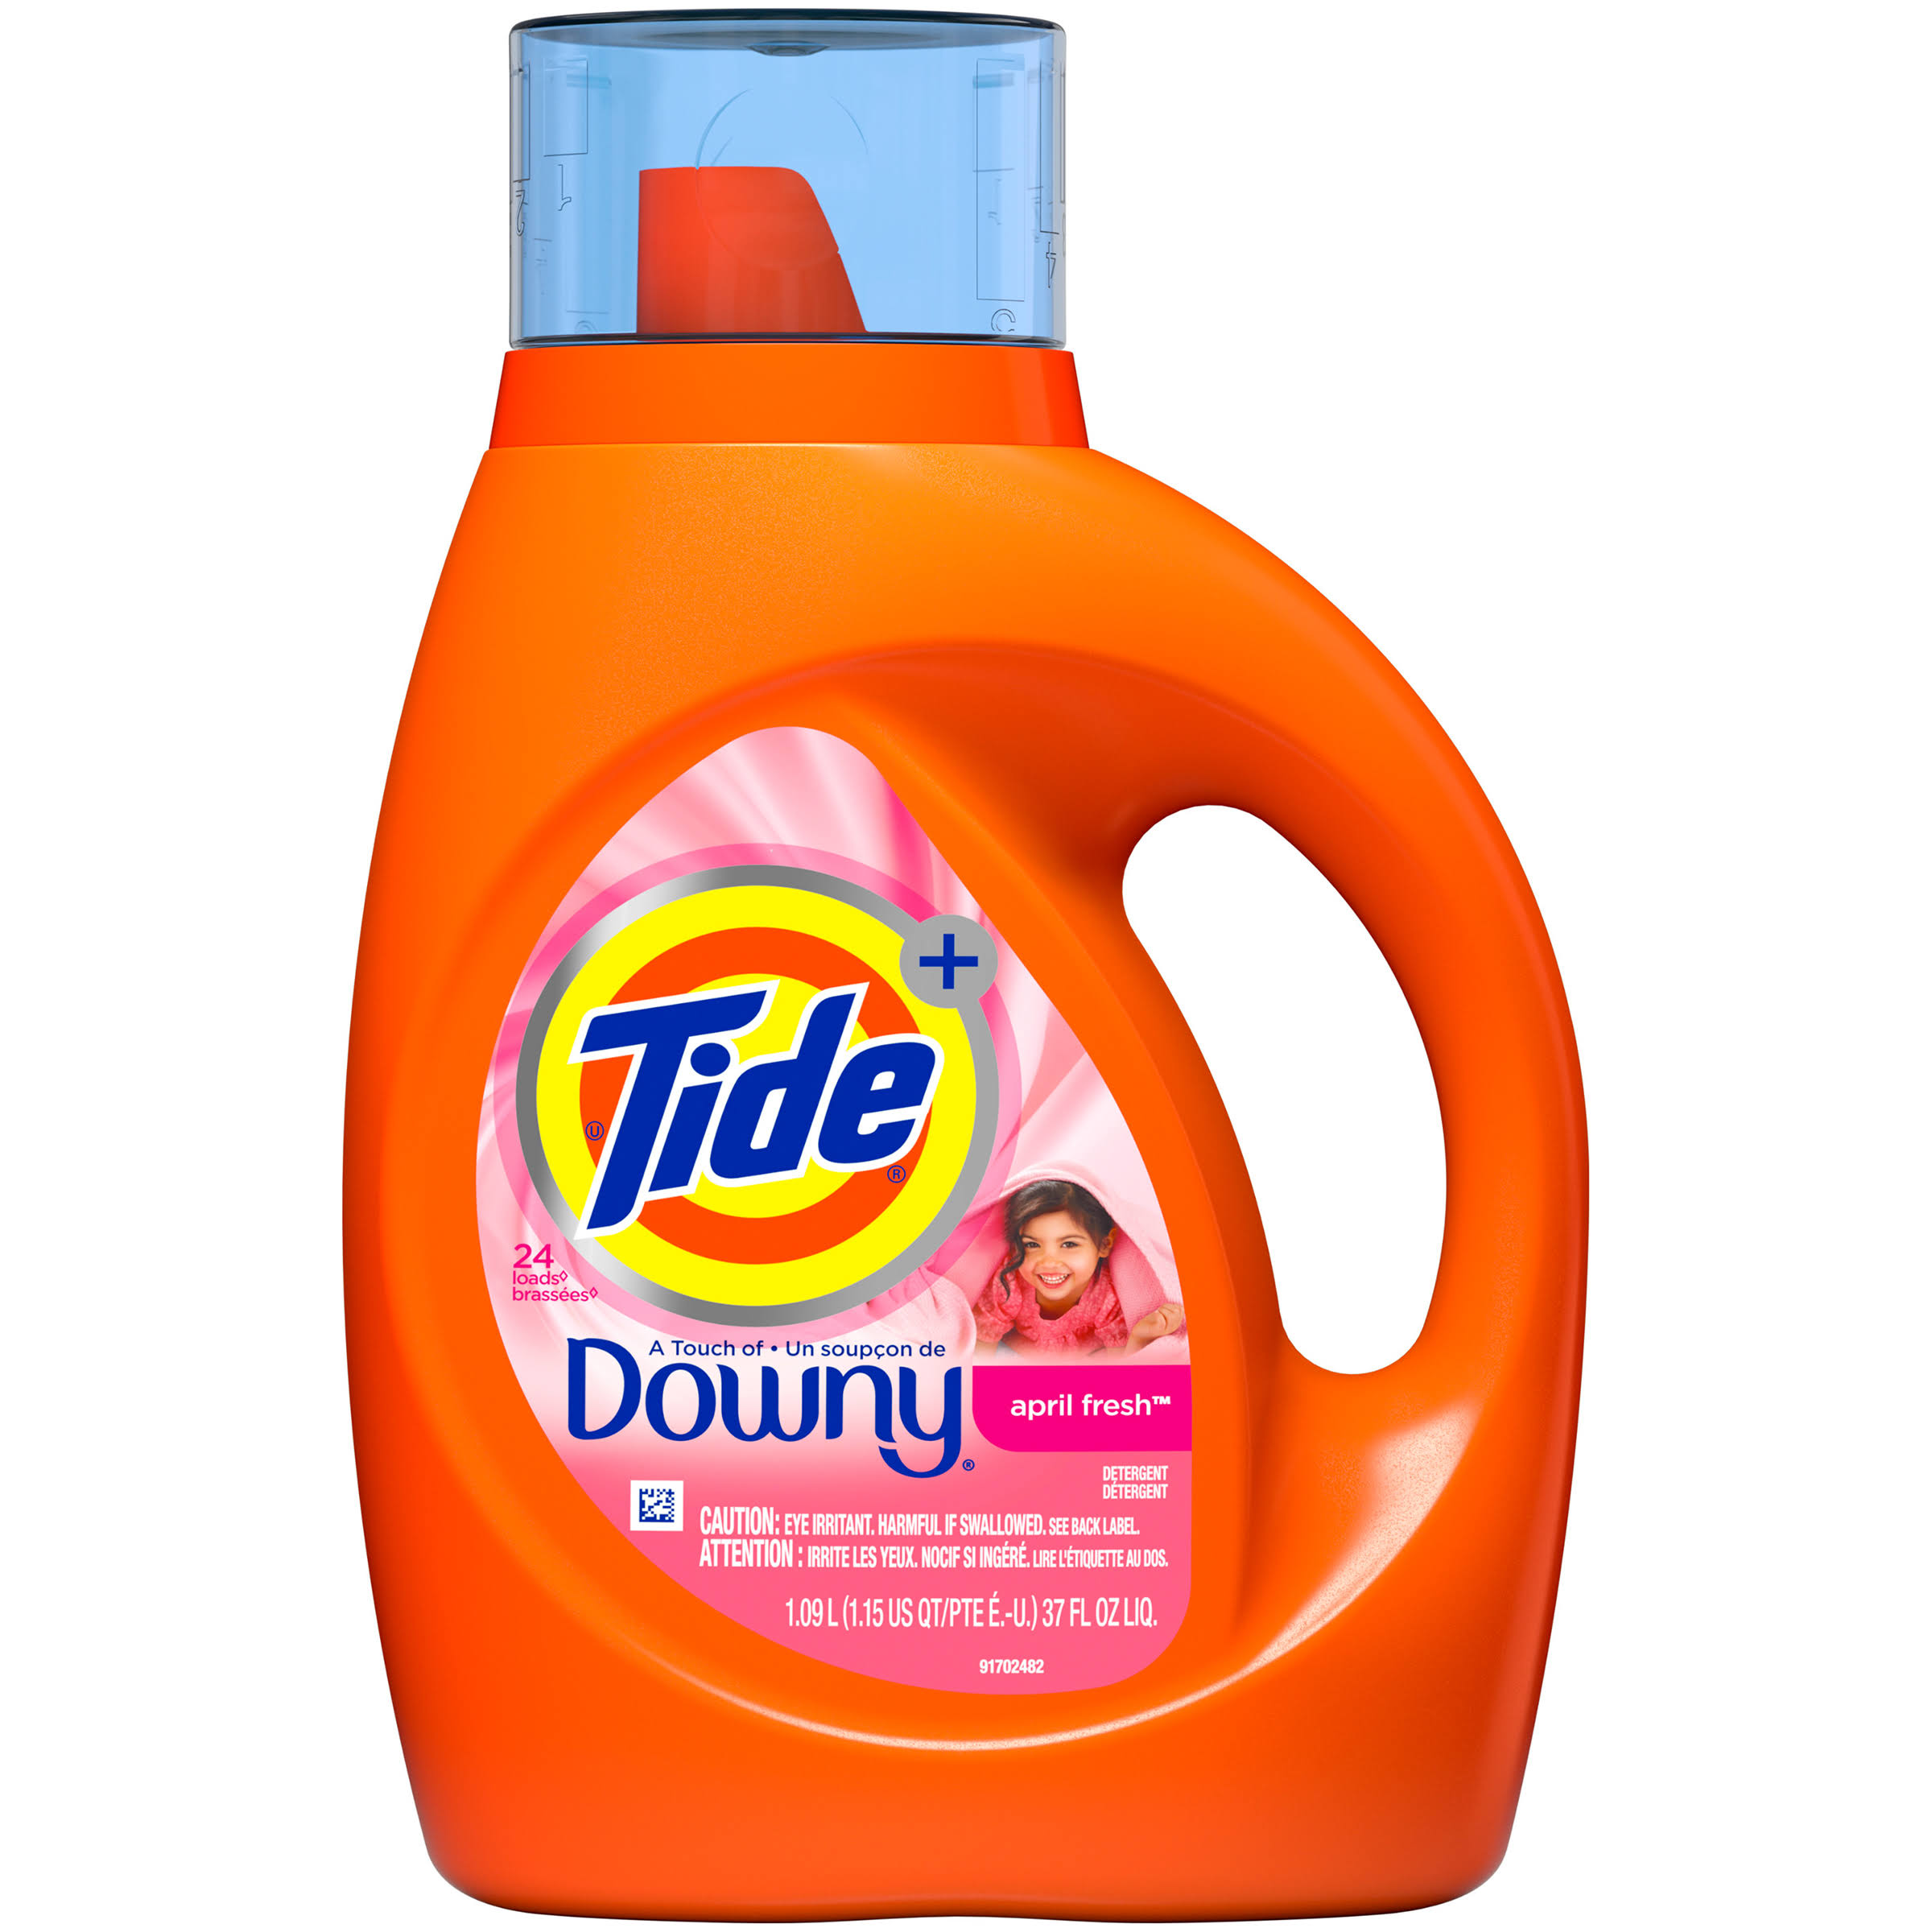 Tide Plus a Touch of Downy Liquid Laundry Detergent - April Fresh Scent, 40oz